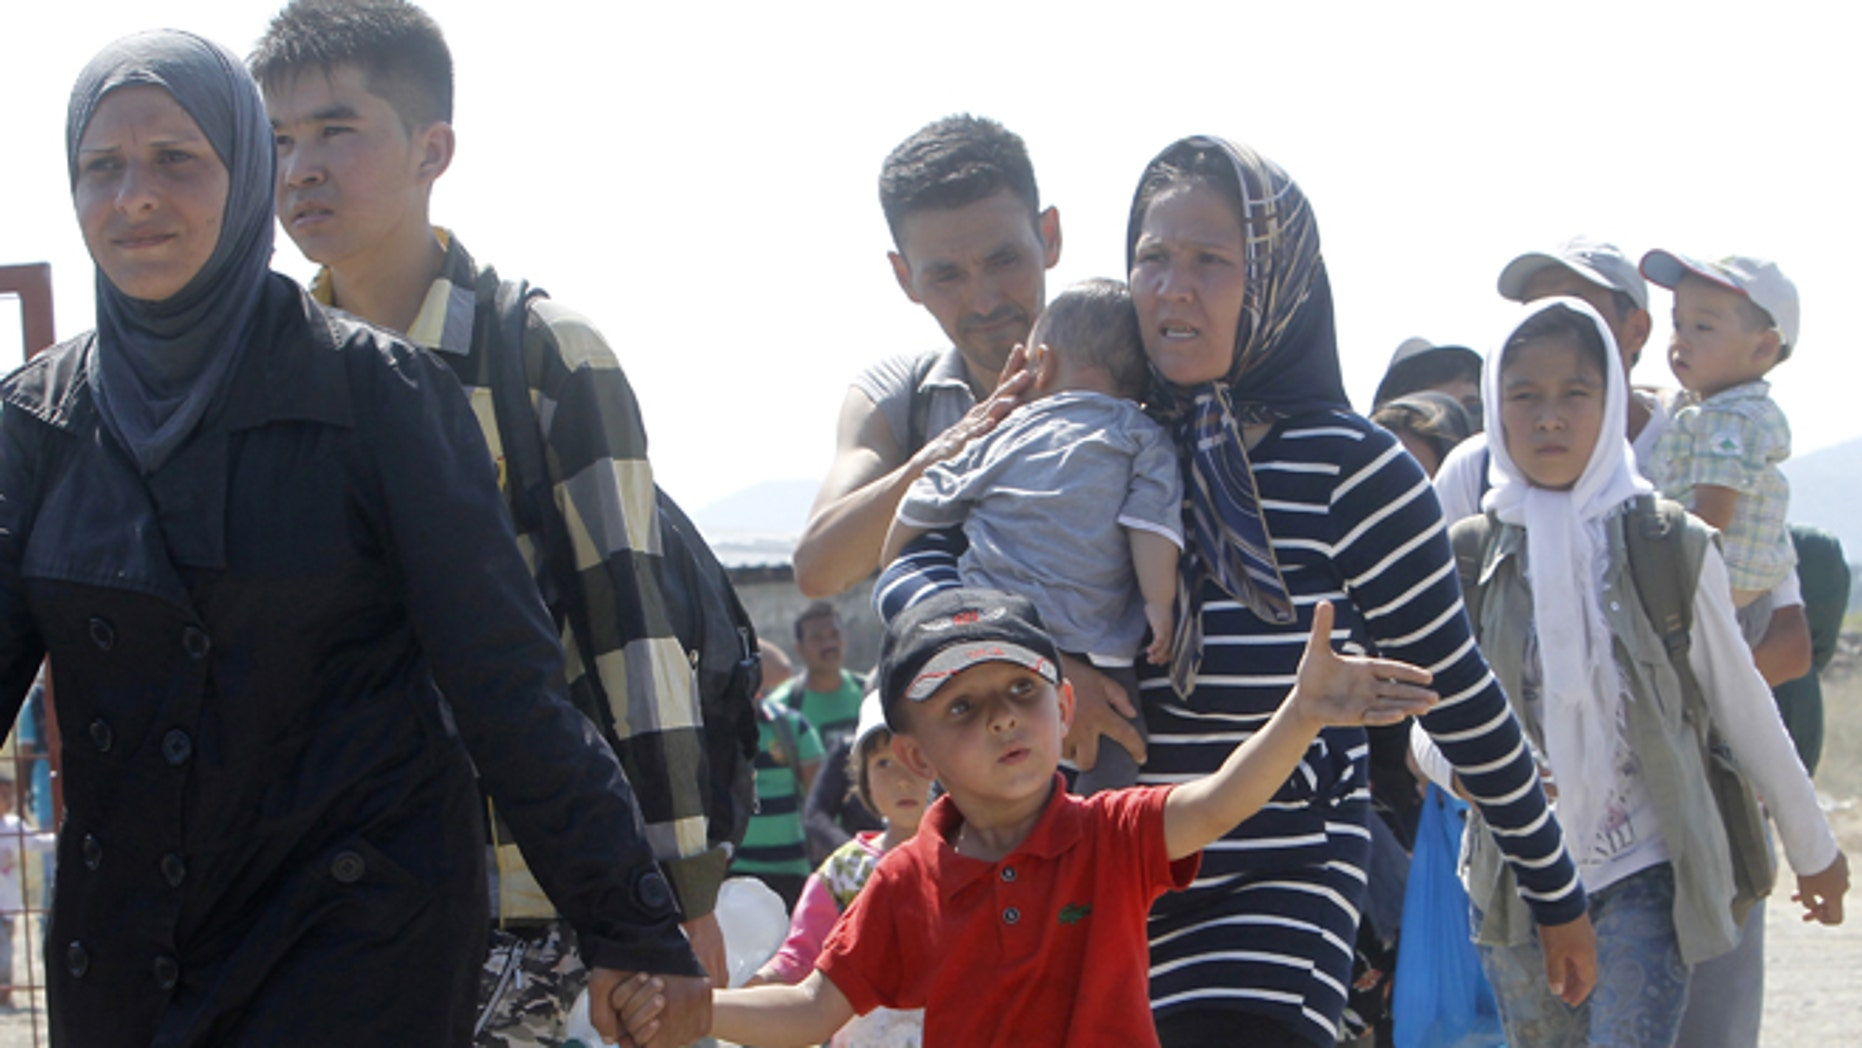 Aug. 31, 2015: A group of migrants with children arrive at the transit center for migrants, after crossing the border from Greece to Macedonia.